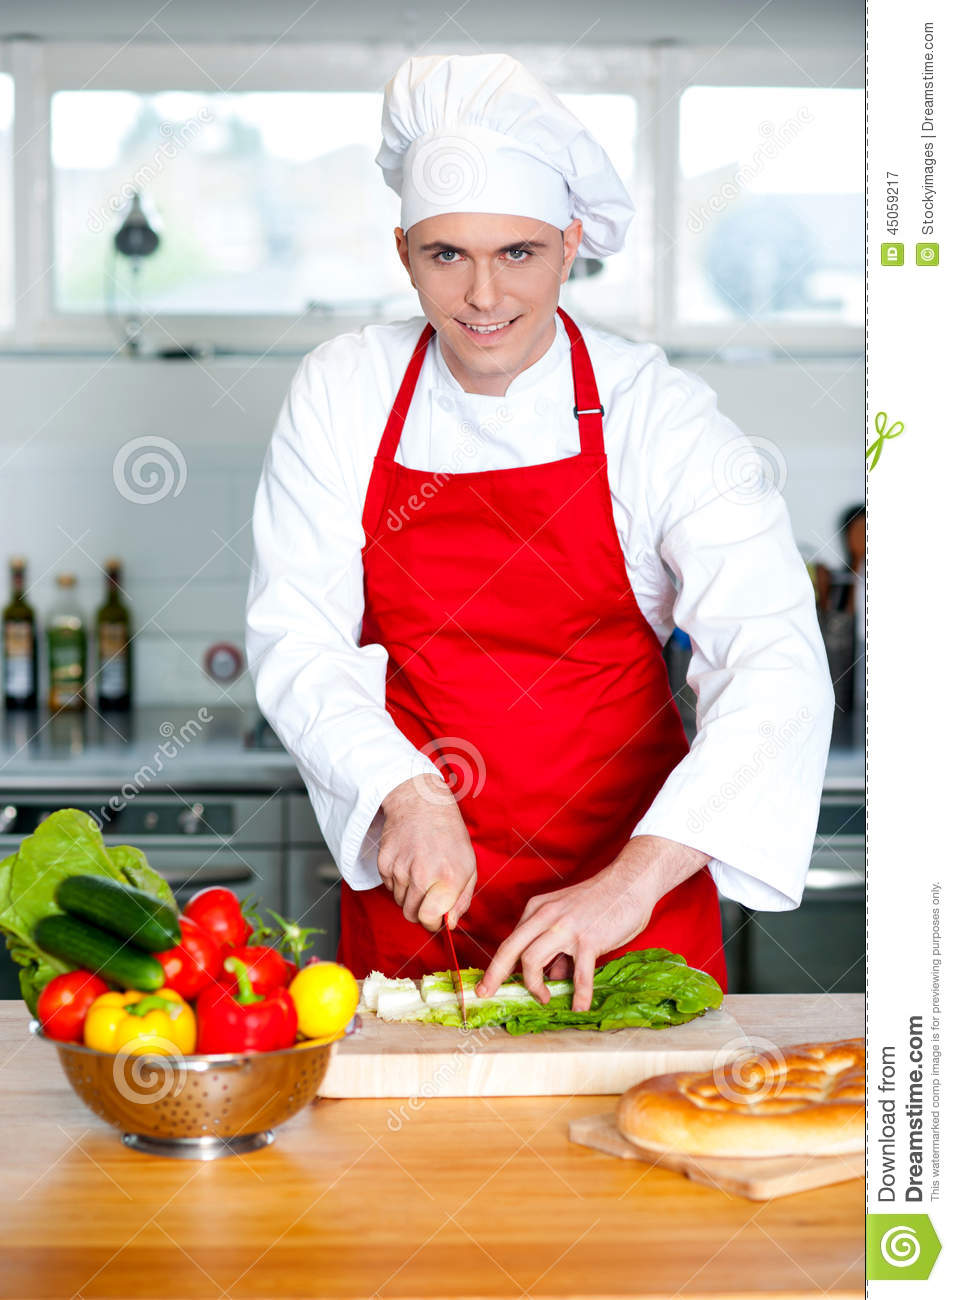 Chef Chopping Vegetables In Kitchen Stock Photo - Image ...